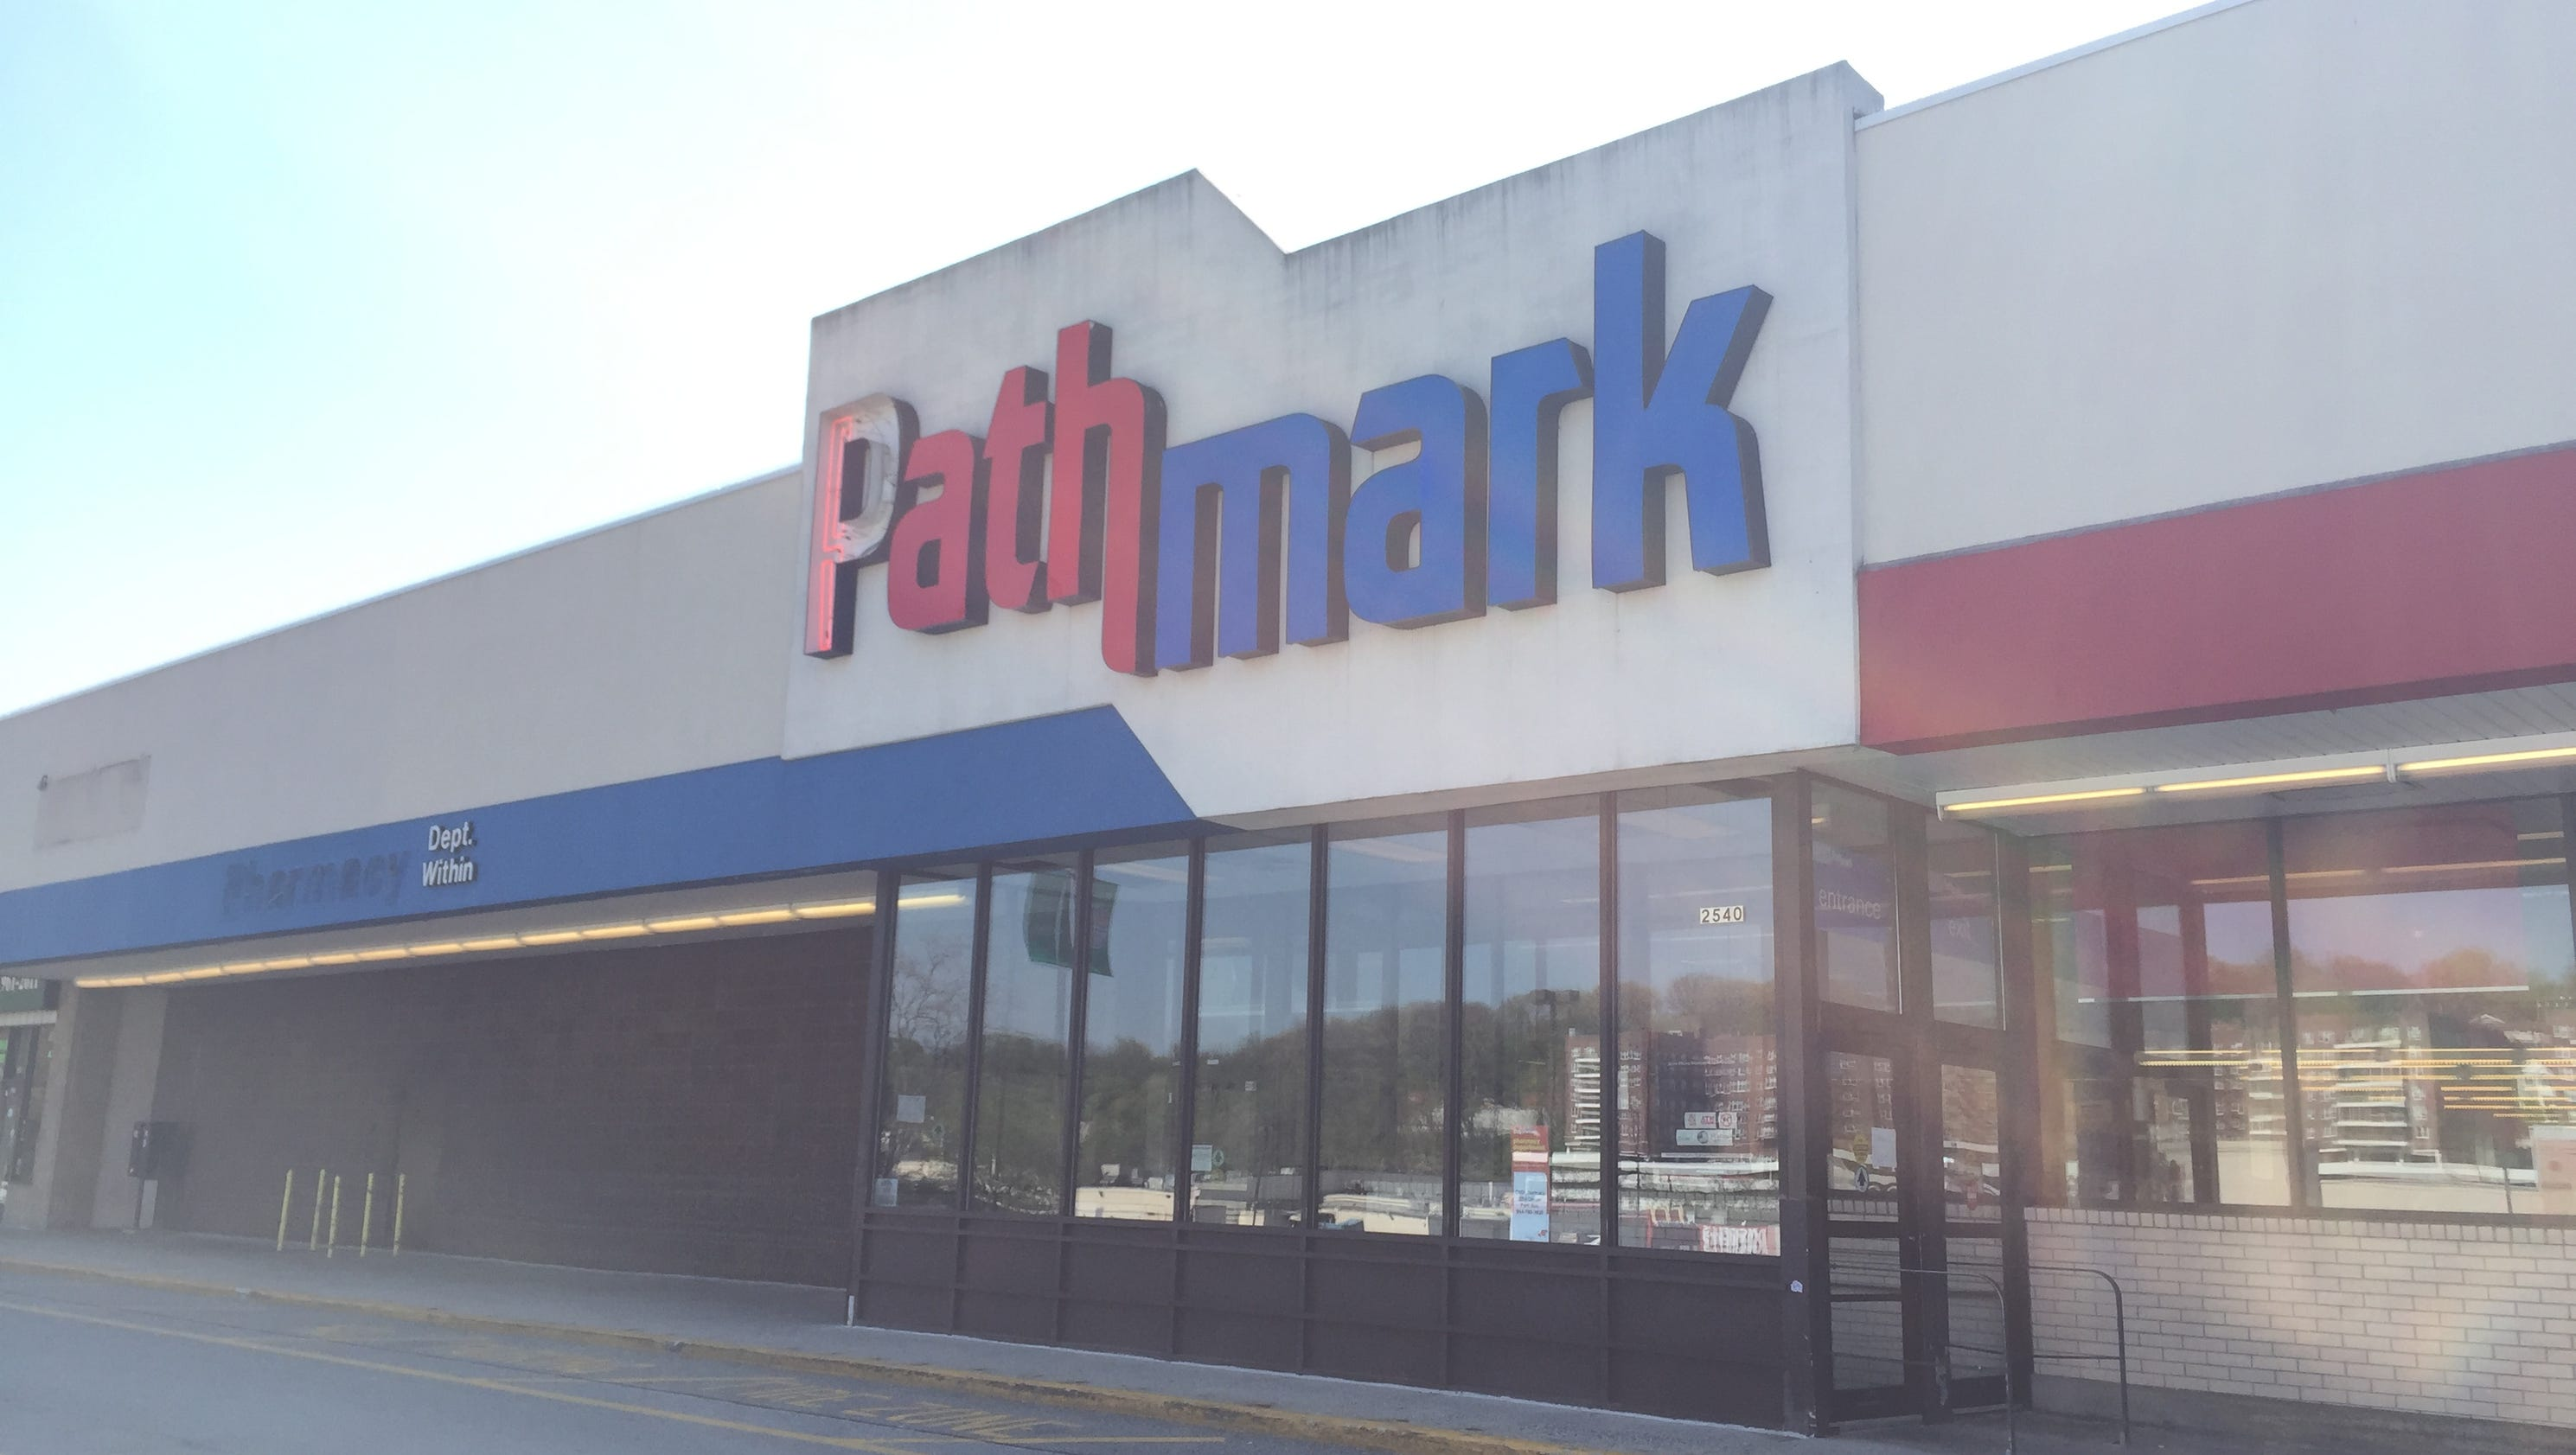 Floor Decor Chain Store Coming To Yonkers